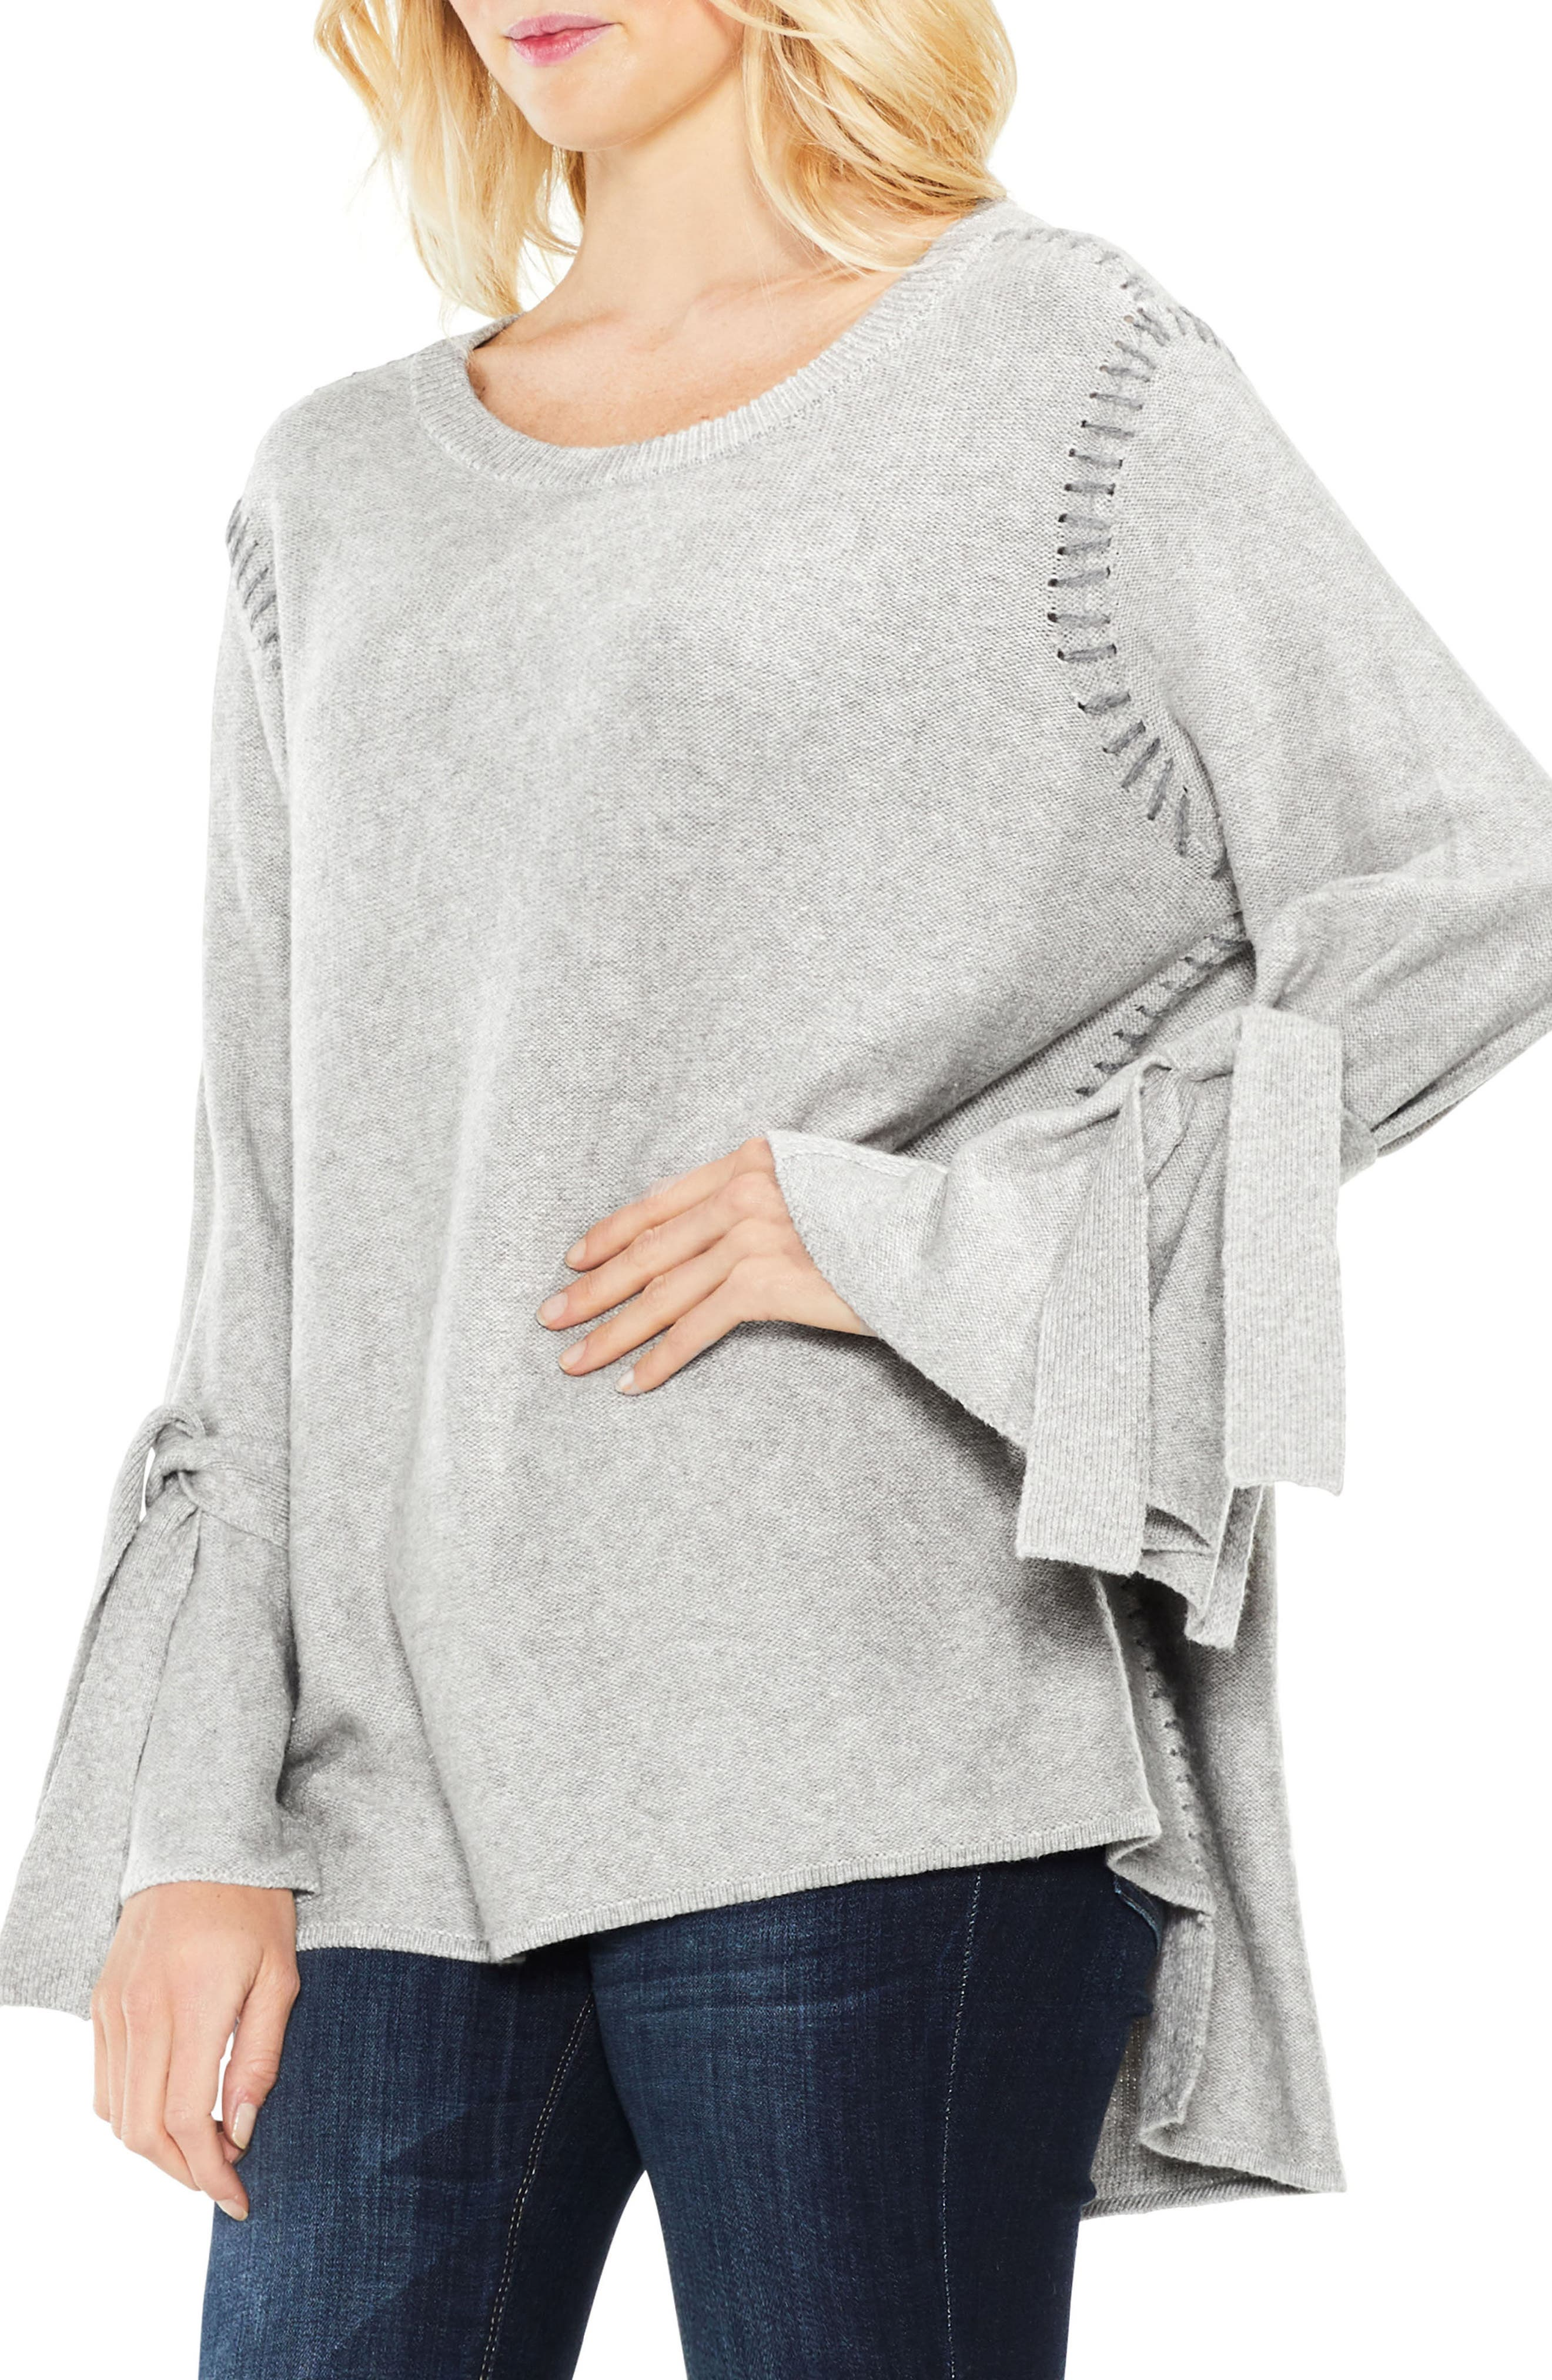 Main Image - Two by Vince Camuto Tie Sleeve Sweater